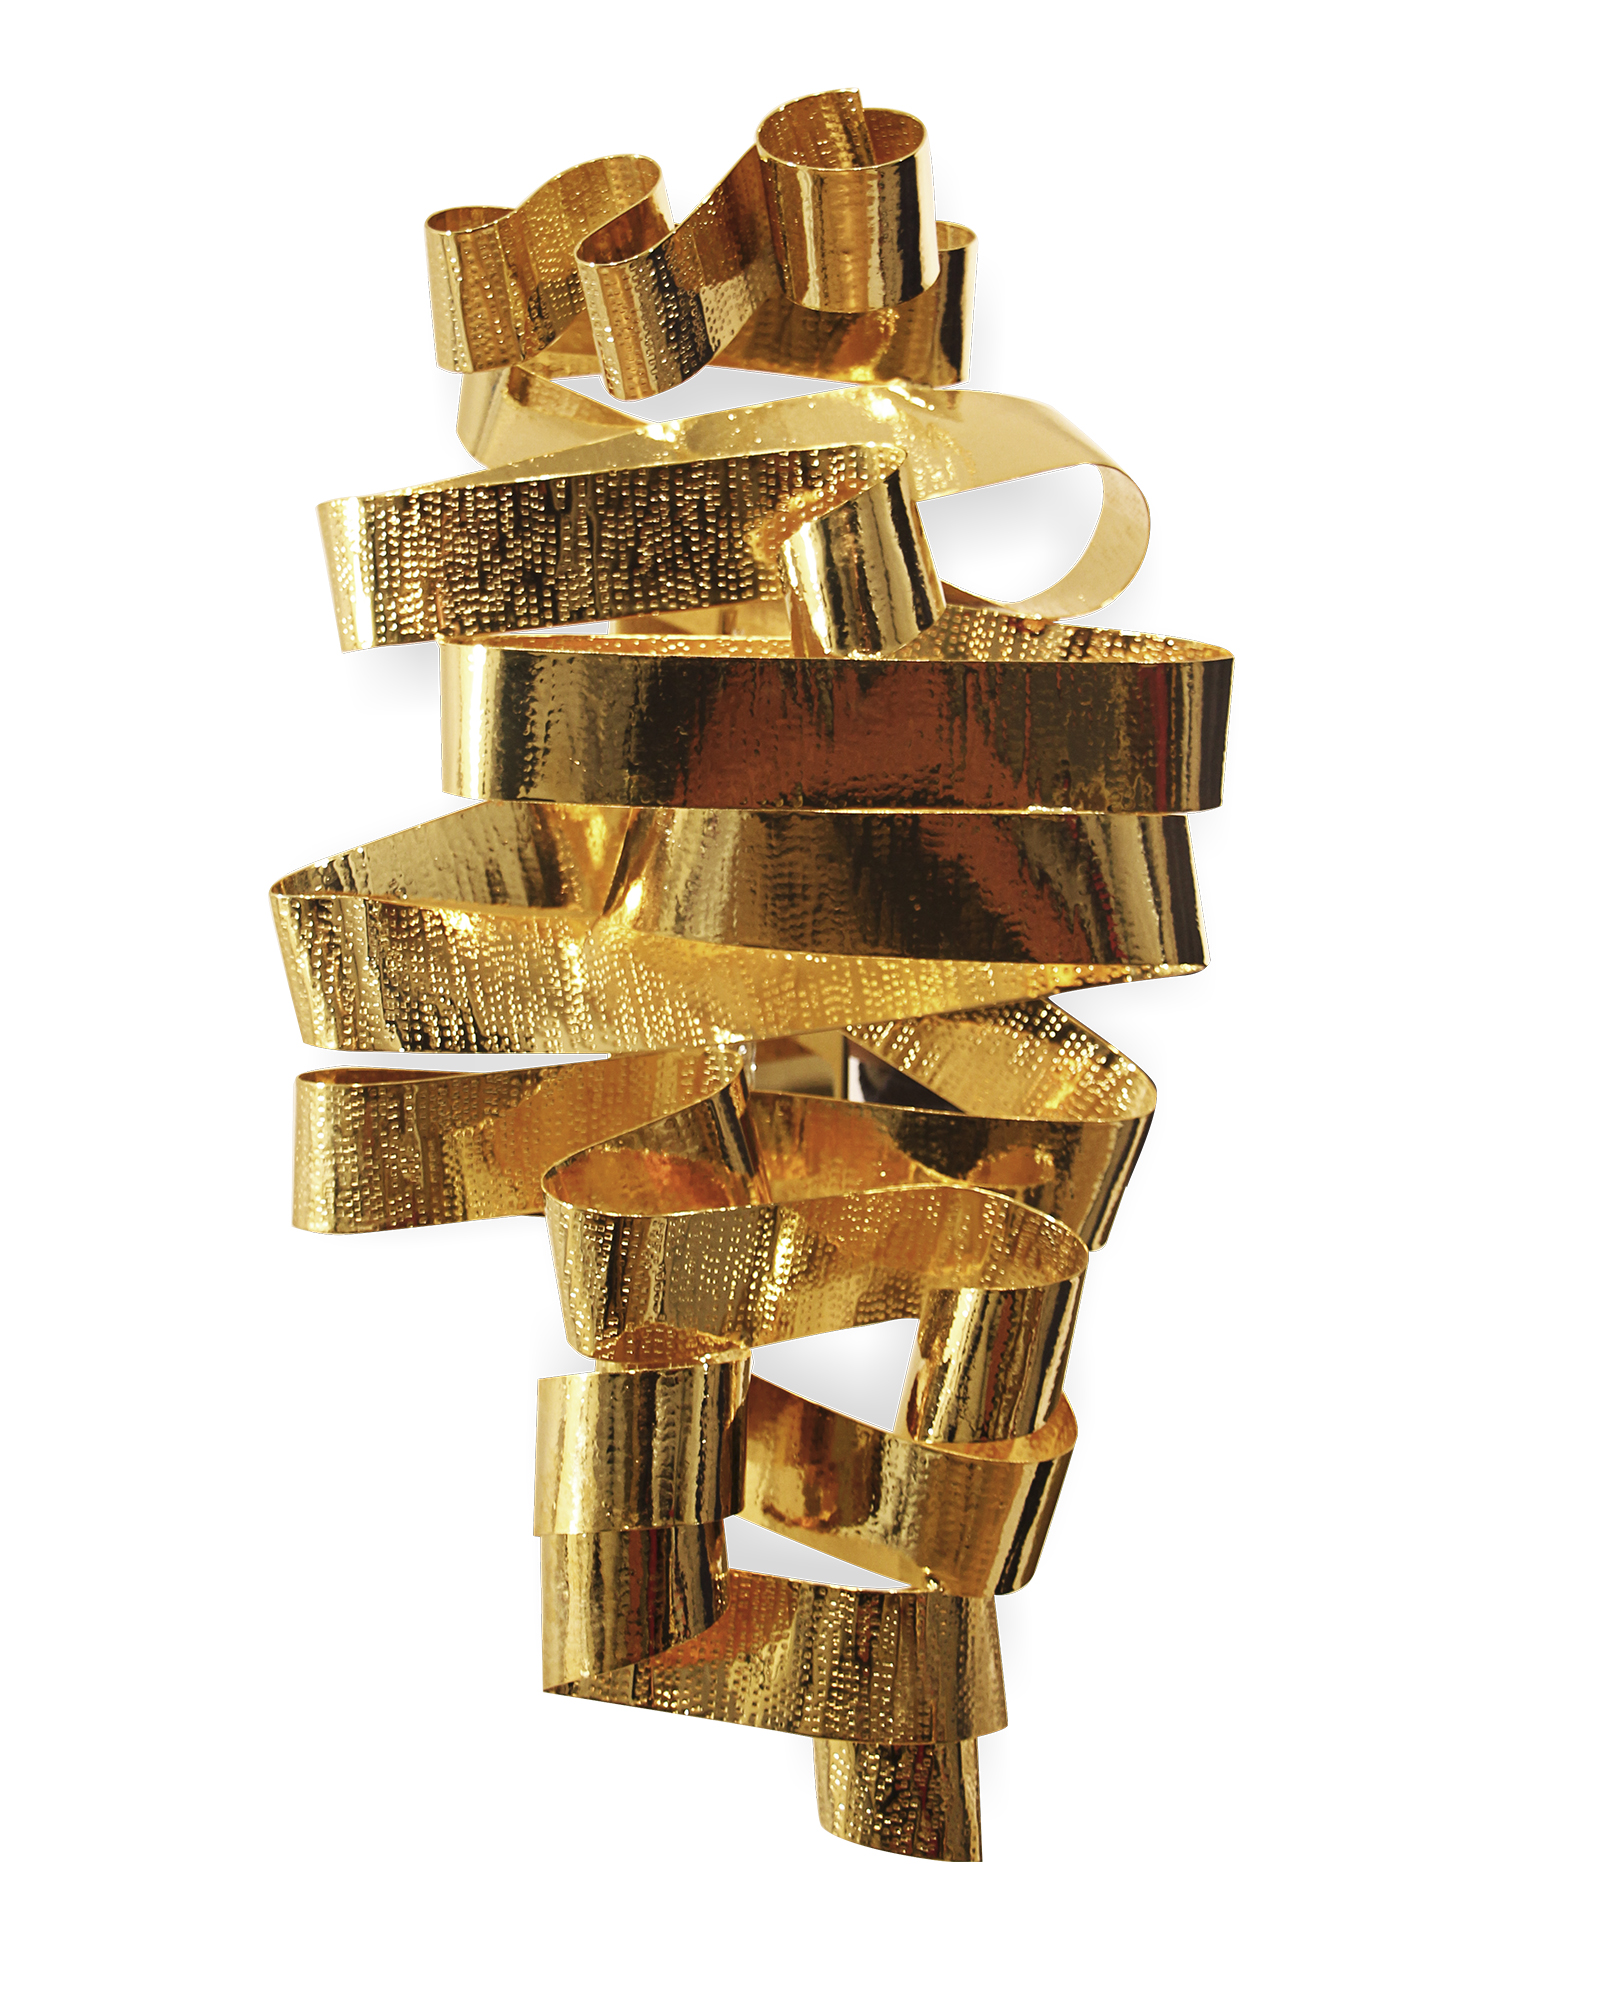 chloe-sconce-1 koket sconces designs 10 Creative Ways to Décor your Living Room with Sconces Designs chloe sconce 1 koket